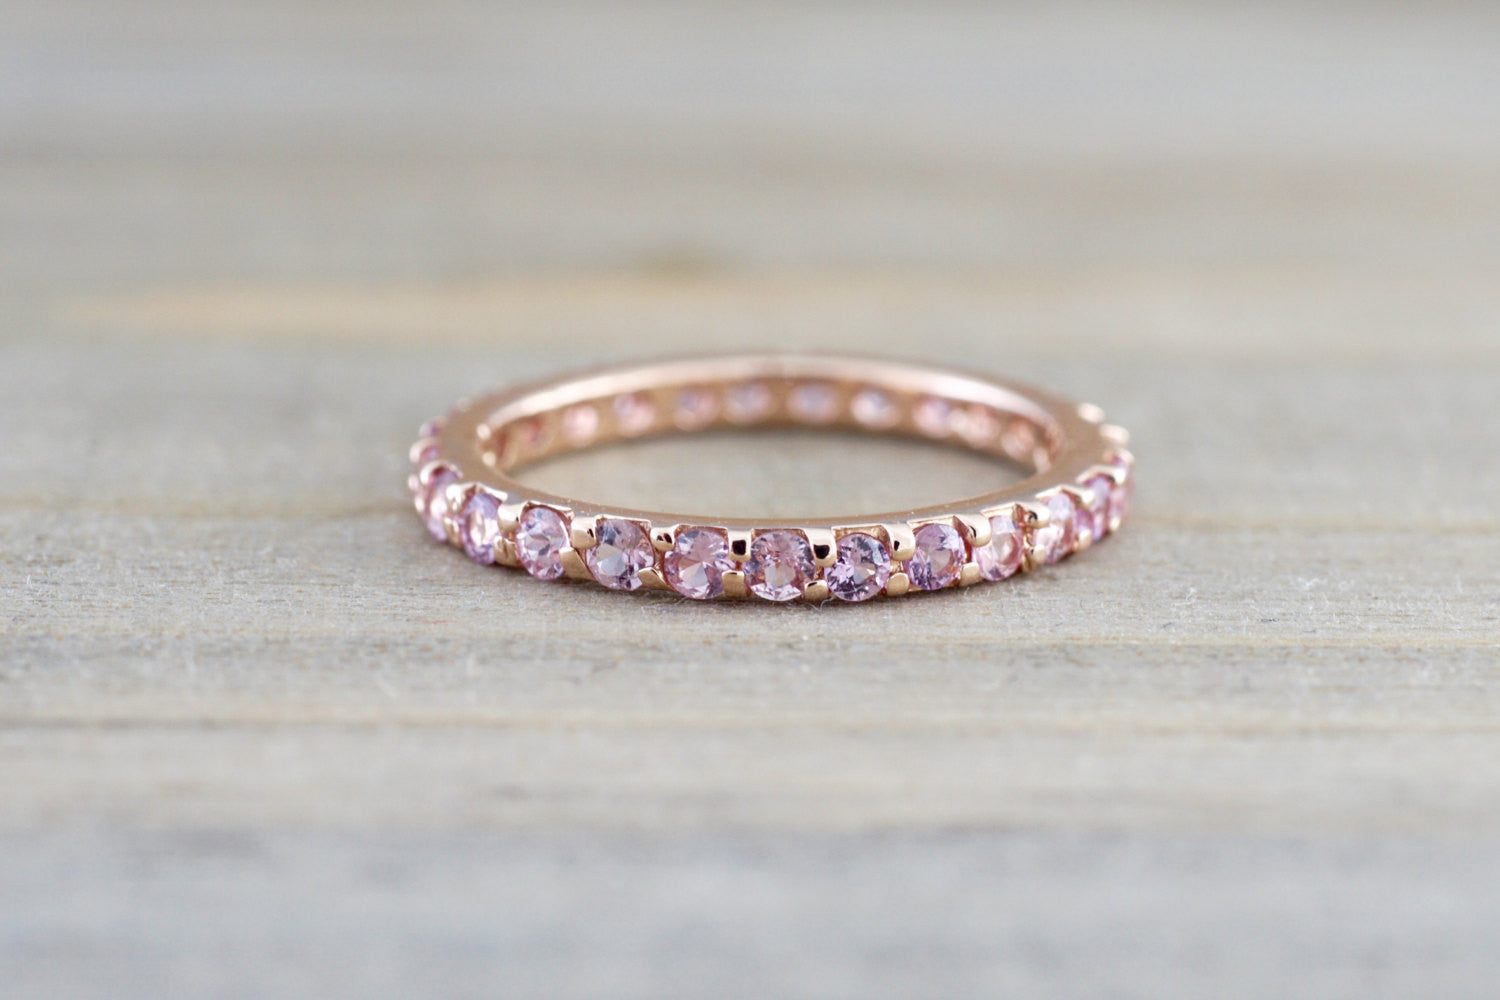 14k Rose Gold Pink Sapphire Eternity Band Ring - Brilliant Facets